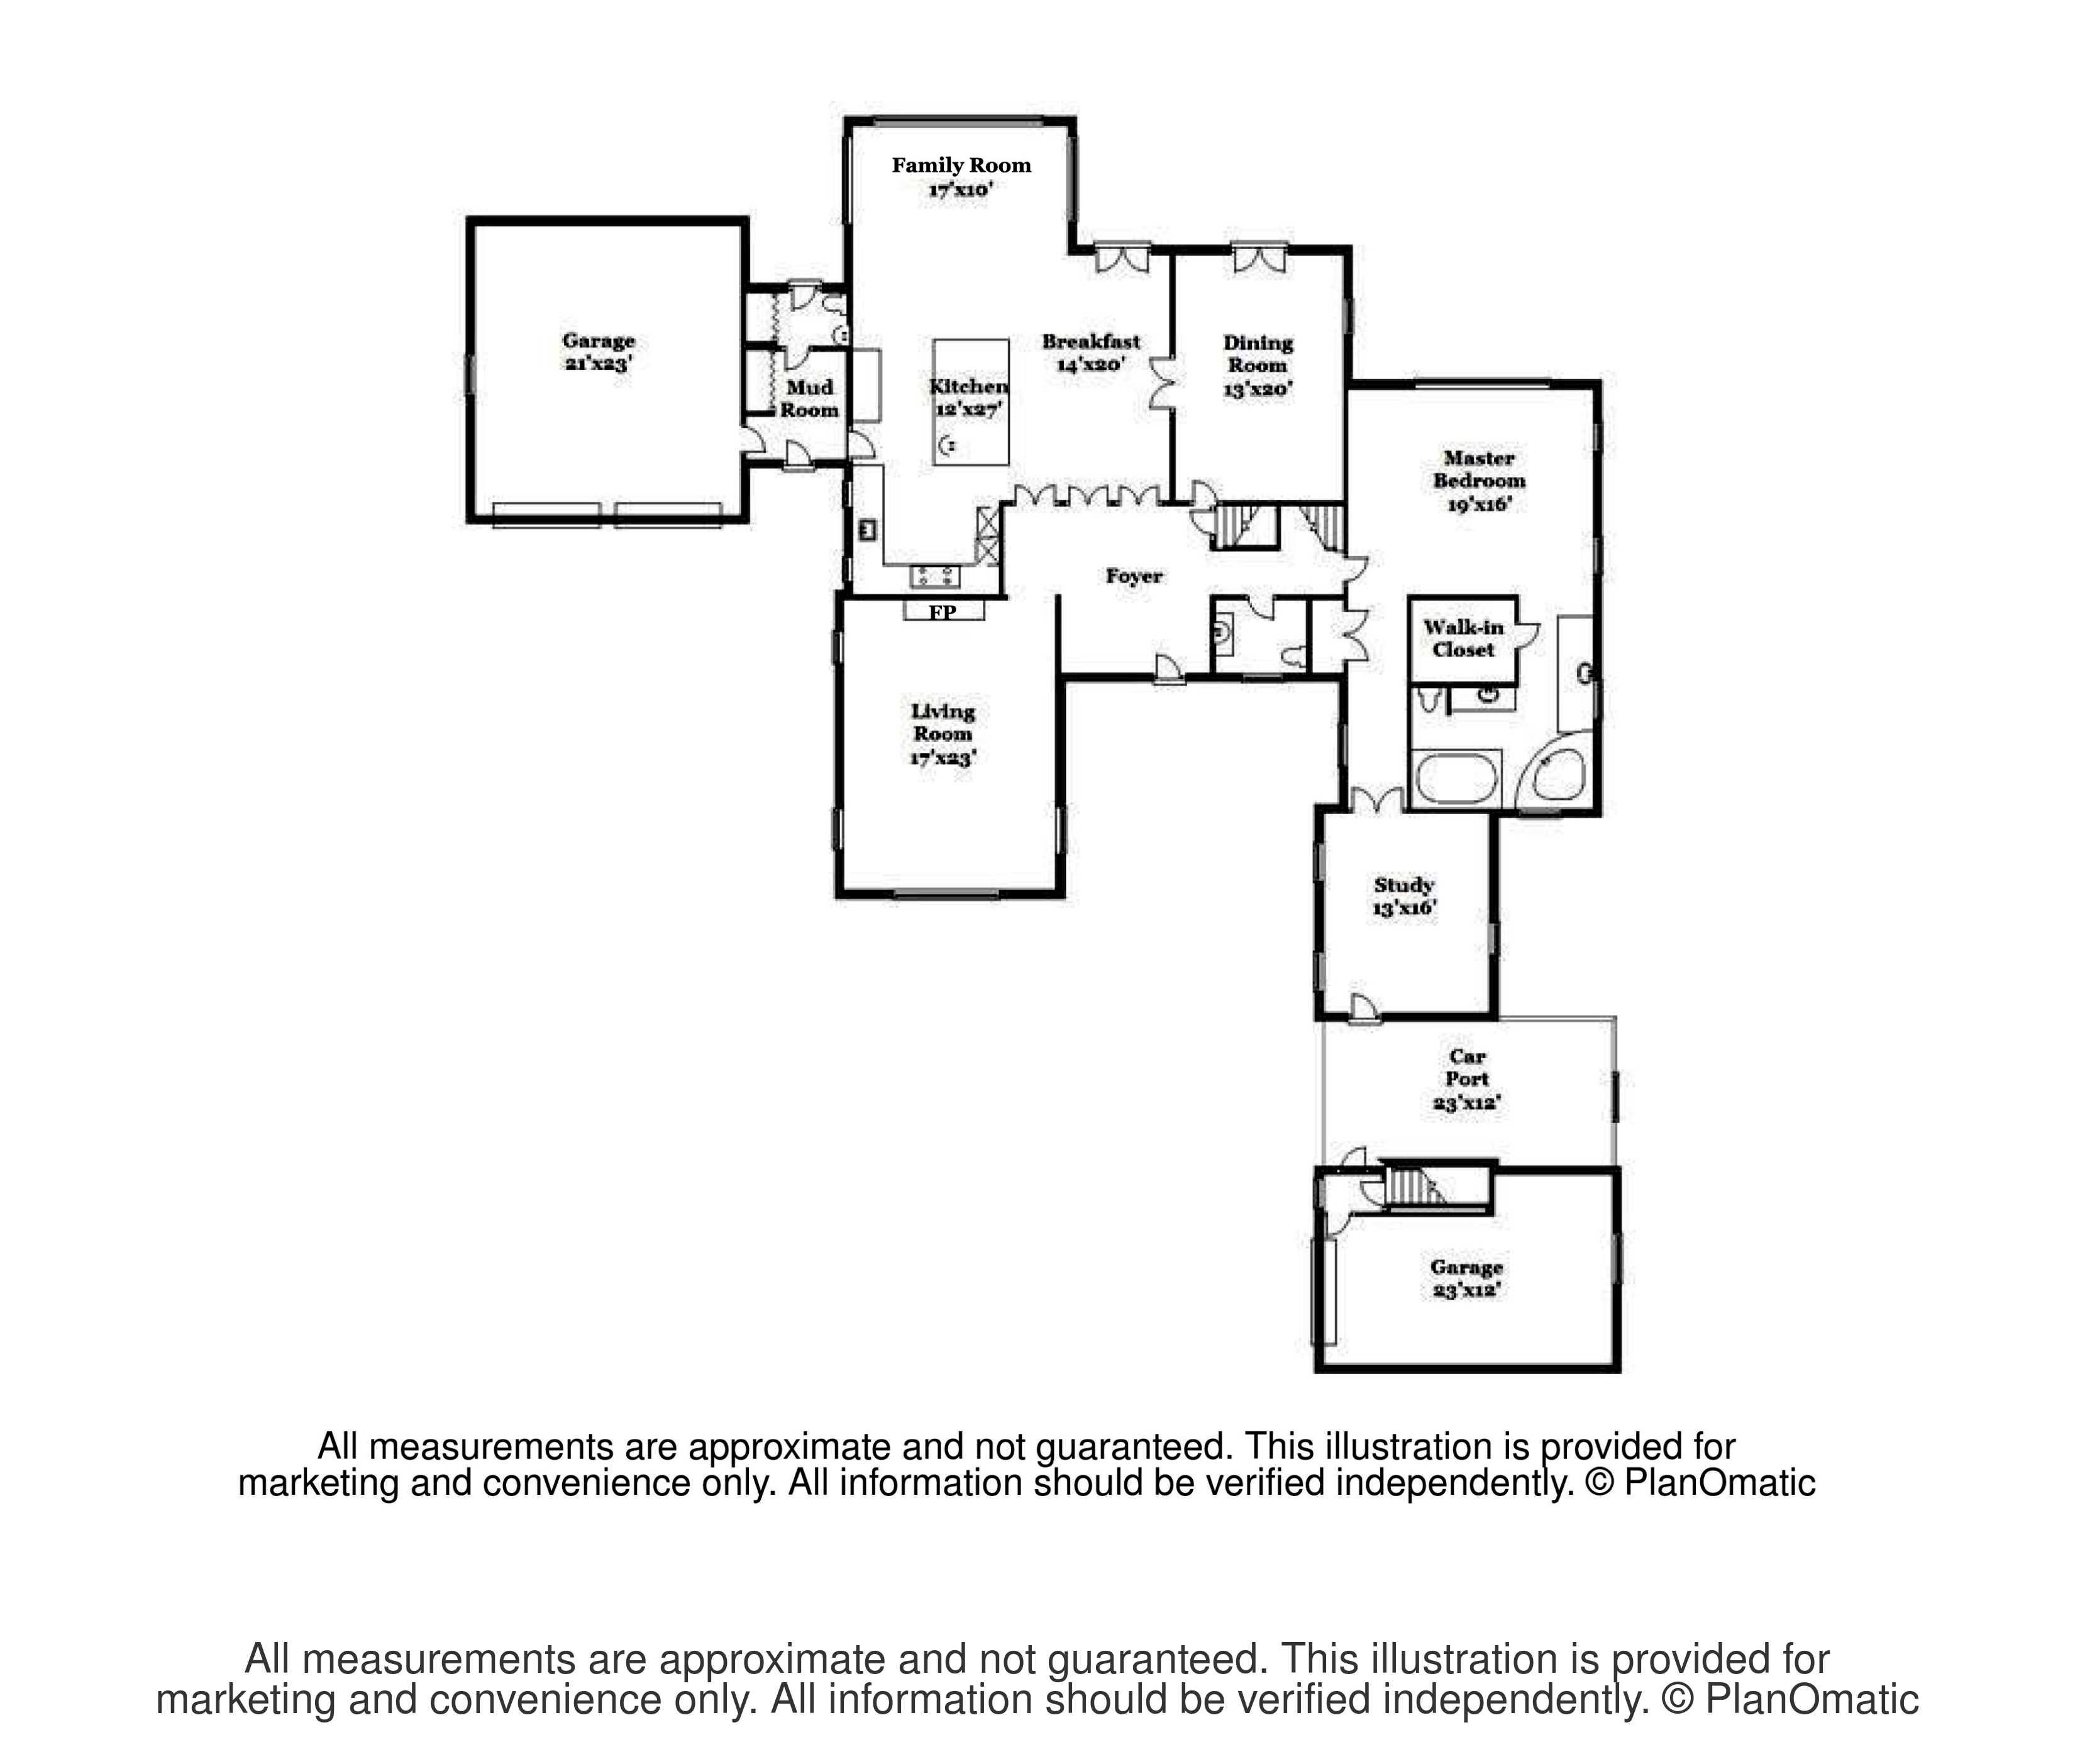 Single Family Homes for Sale at William Thompson-Designed Home Upends Expectations 141 Rolling Hill Road, Skillman, New Jersey 08558 United States